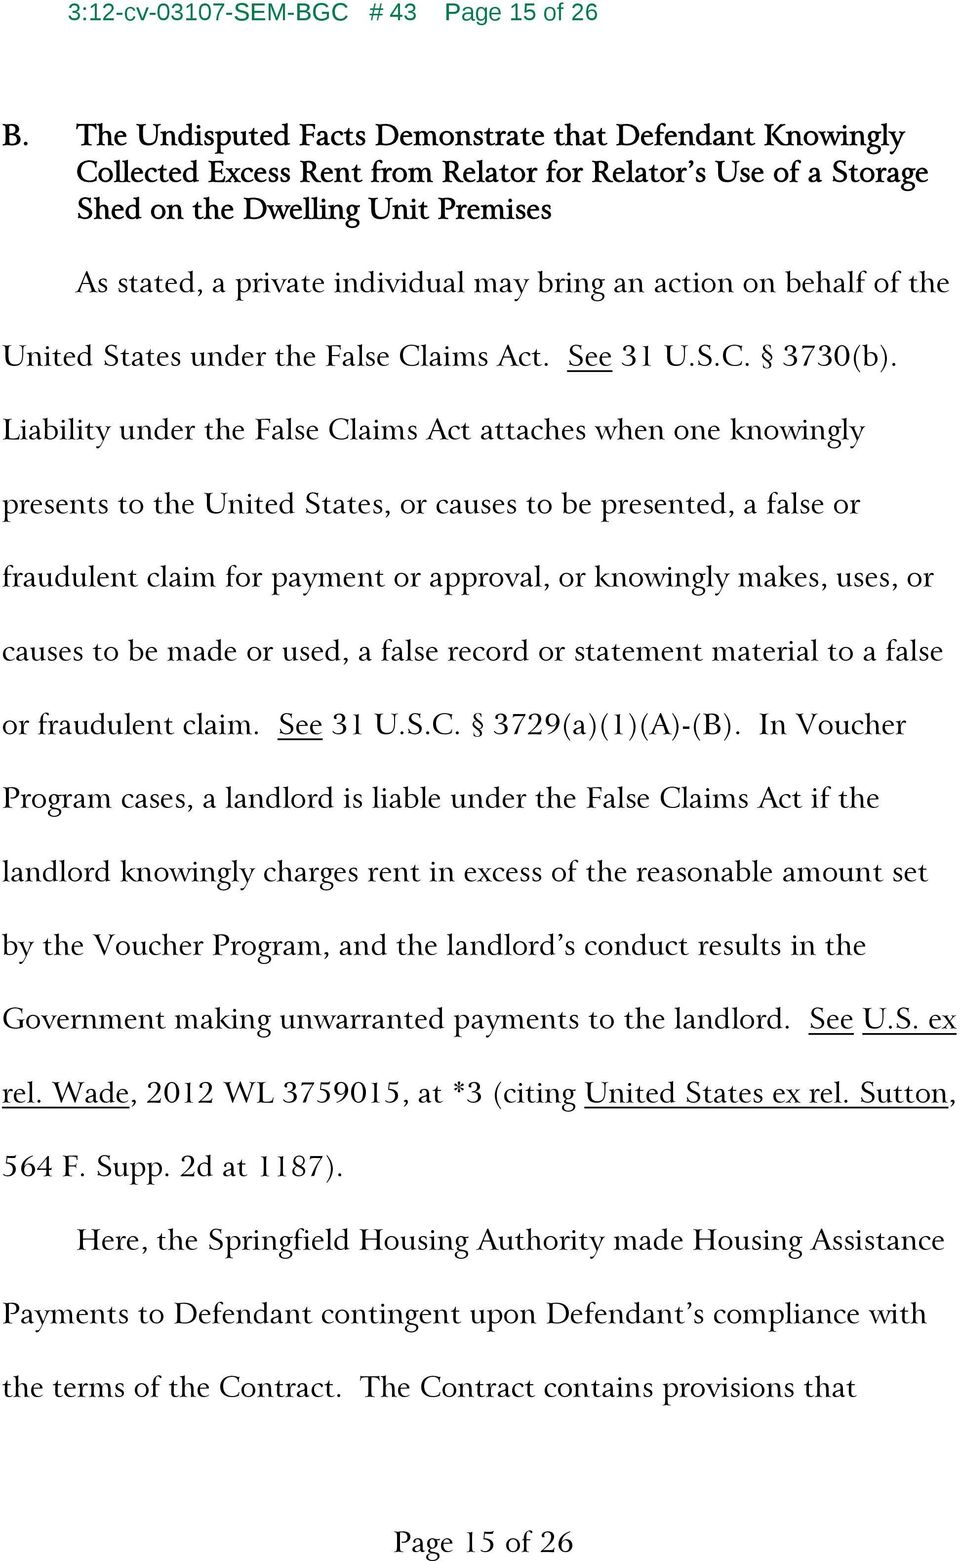 bring an action on behalf of the United States under the False Claims Act. See 31 U.S.C. 3730(b).